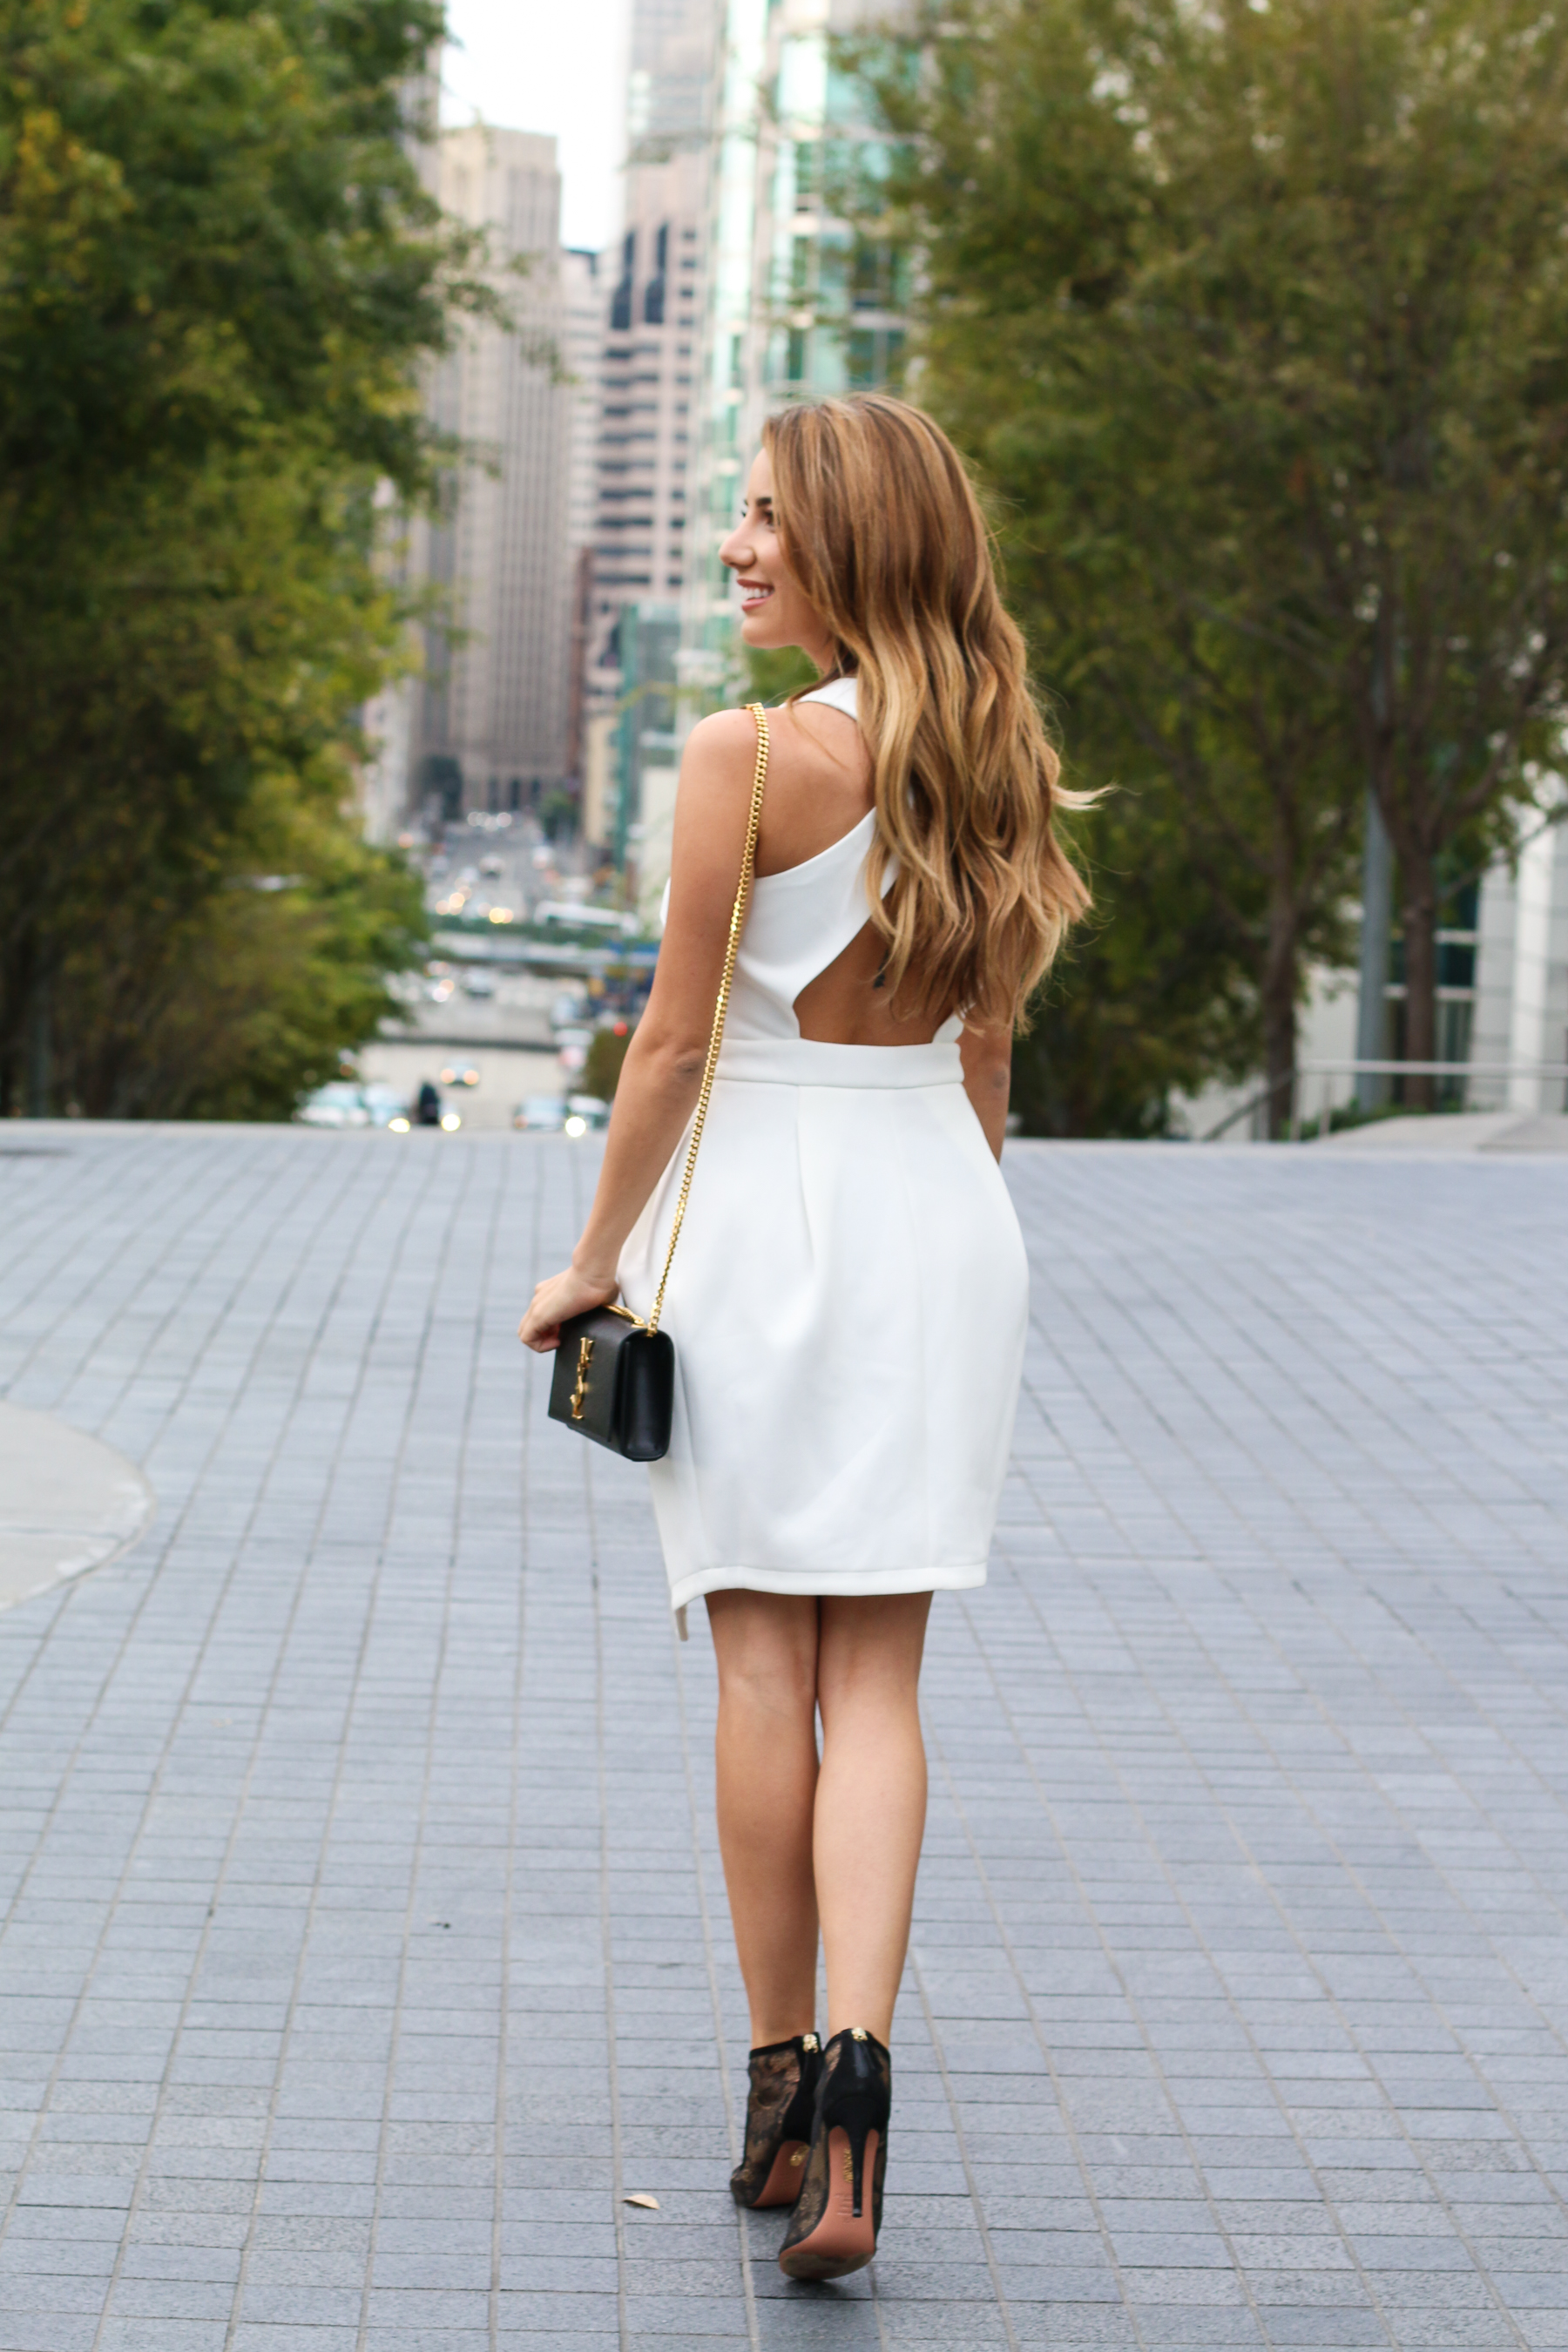 Ariana Lauren Fashion Born Blogger Streetstyle Photography by Ryan Chua-1063